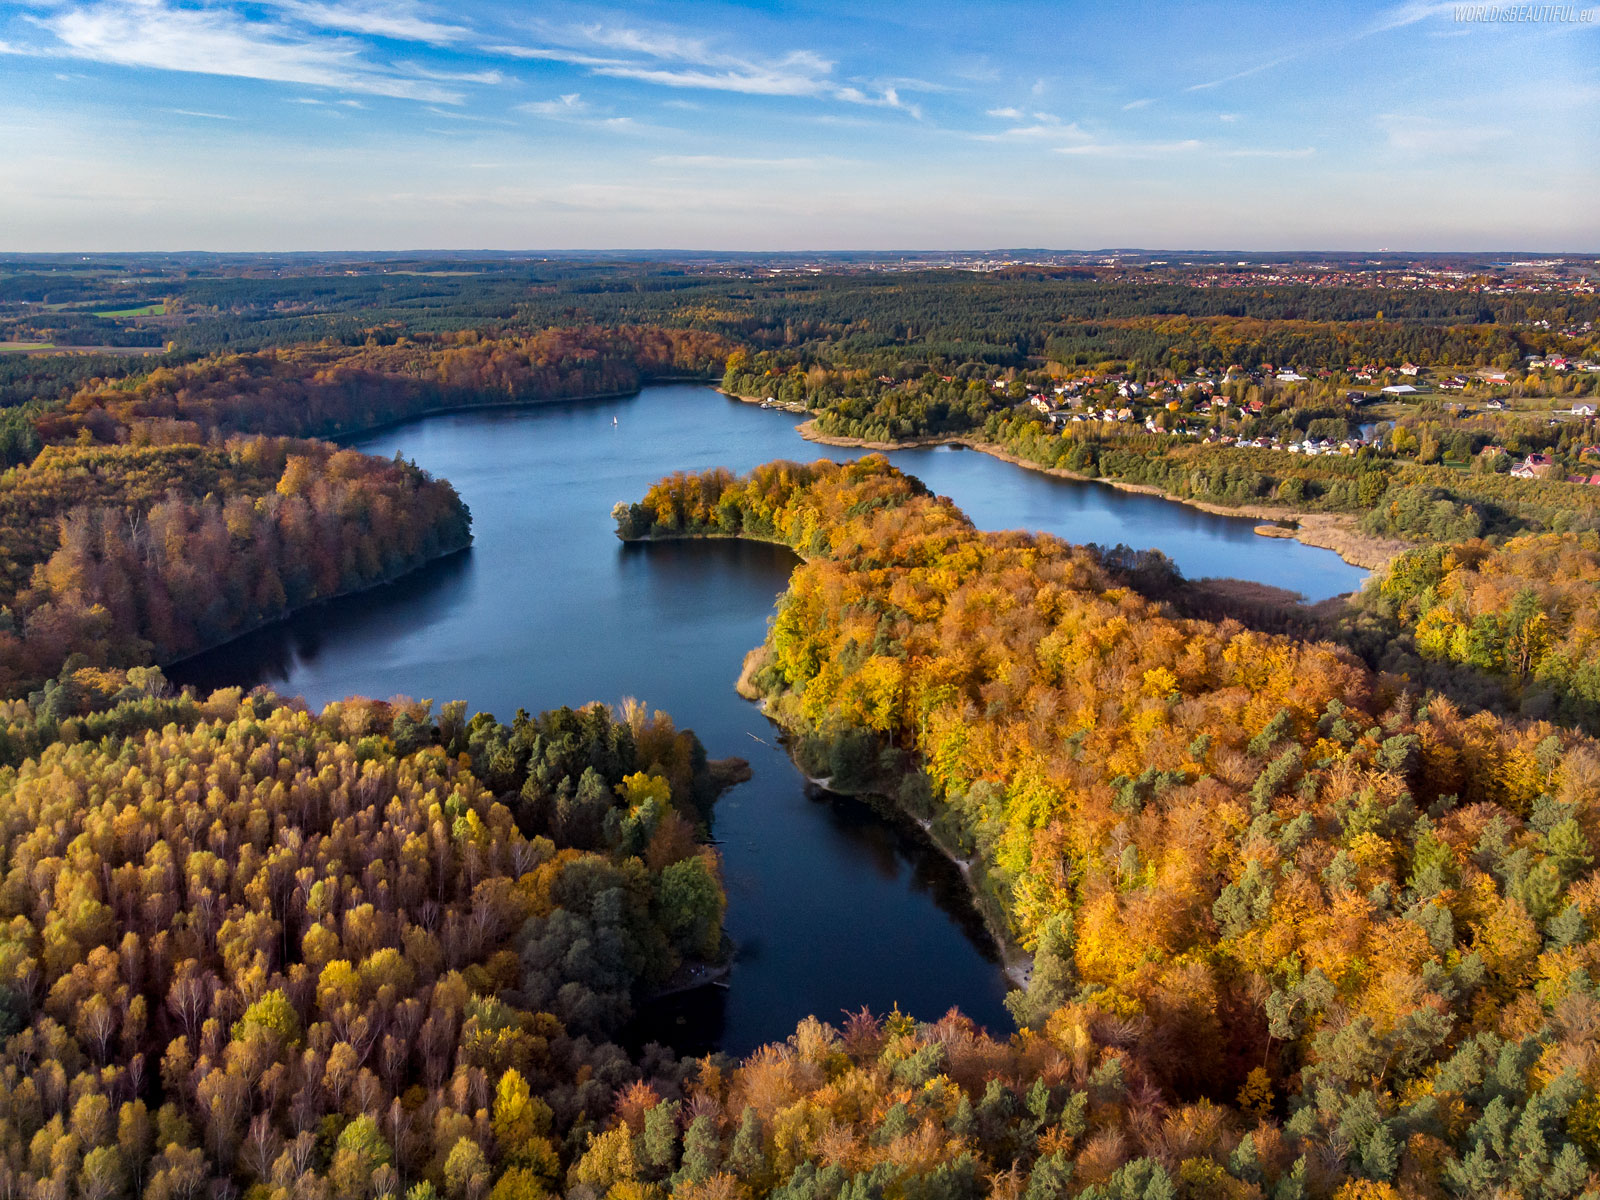 Otomińskie Lake in the fall